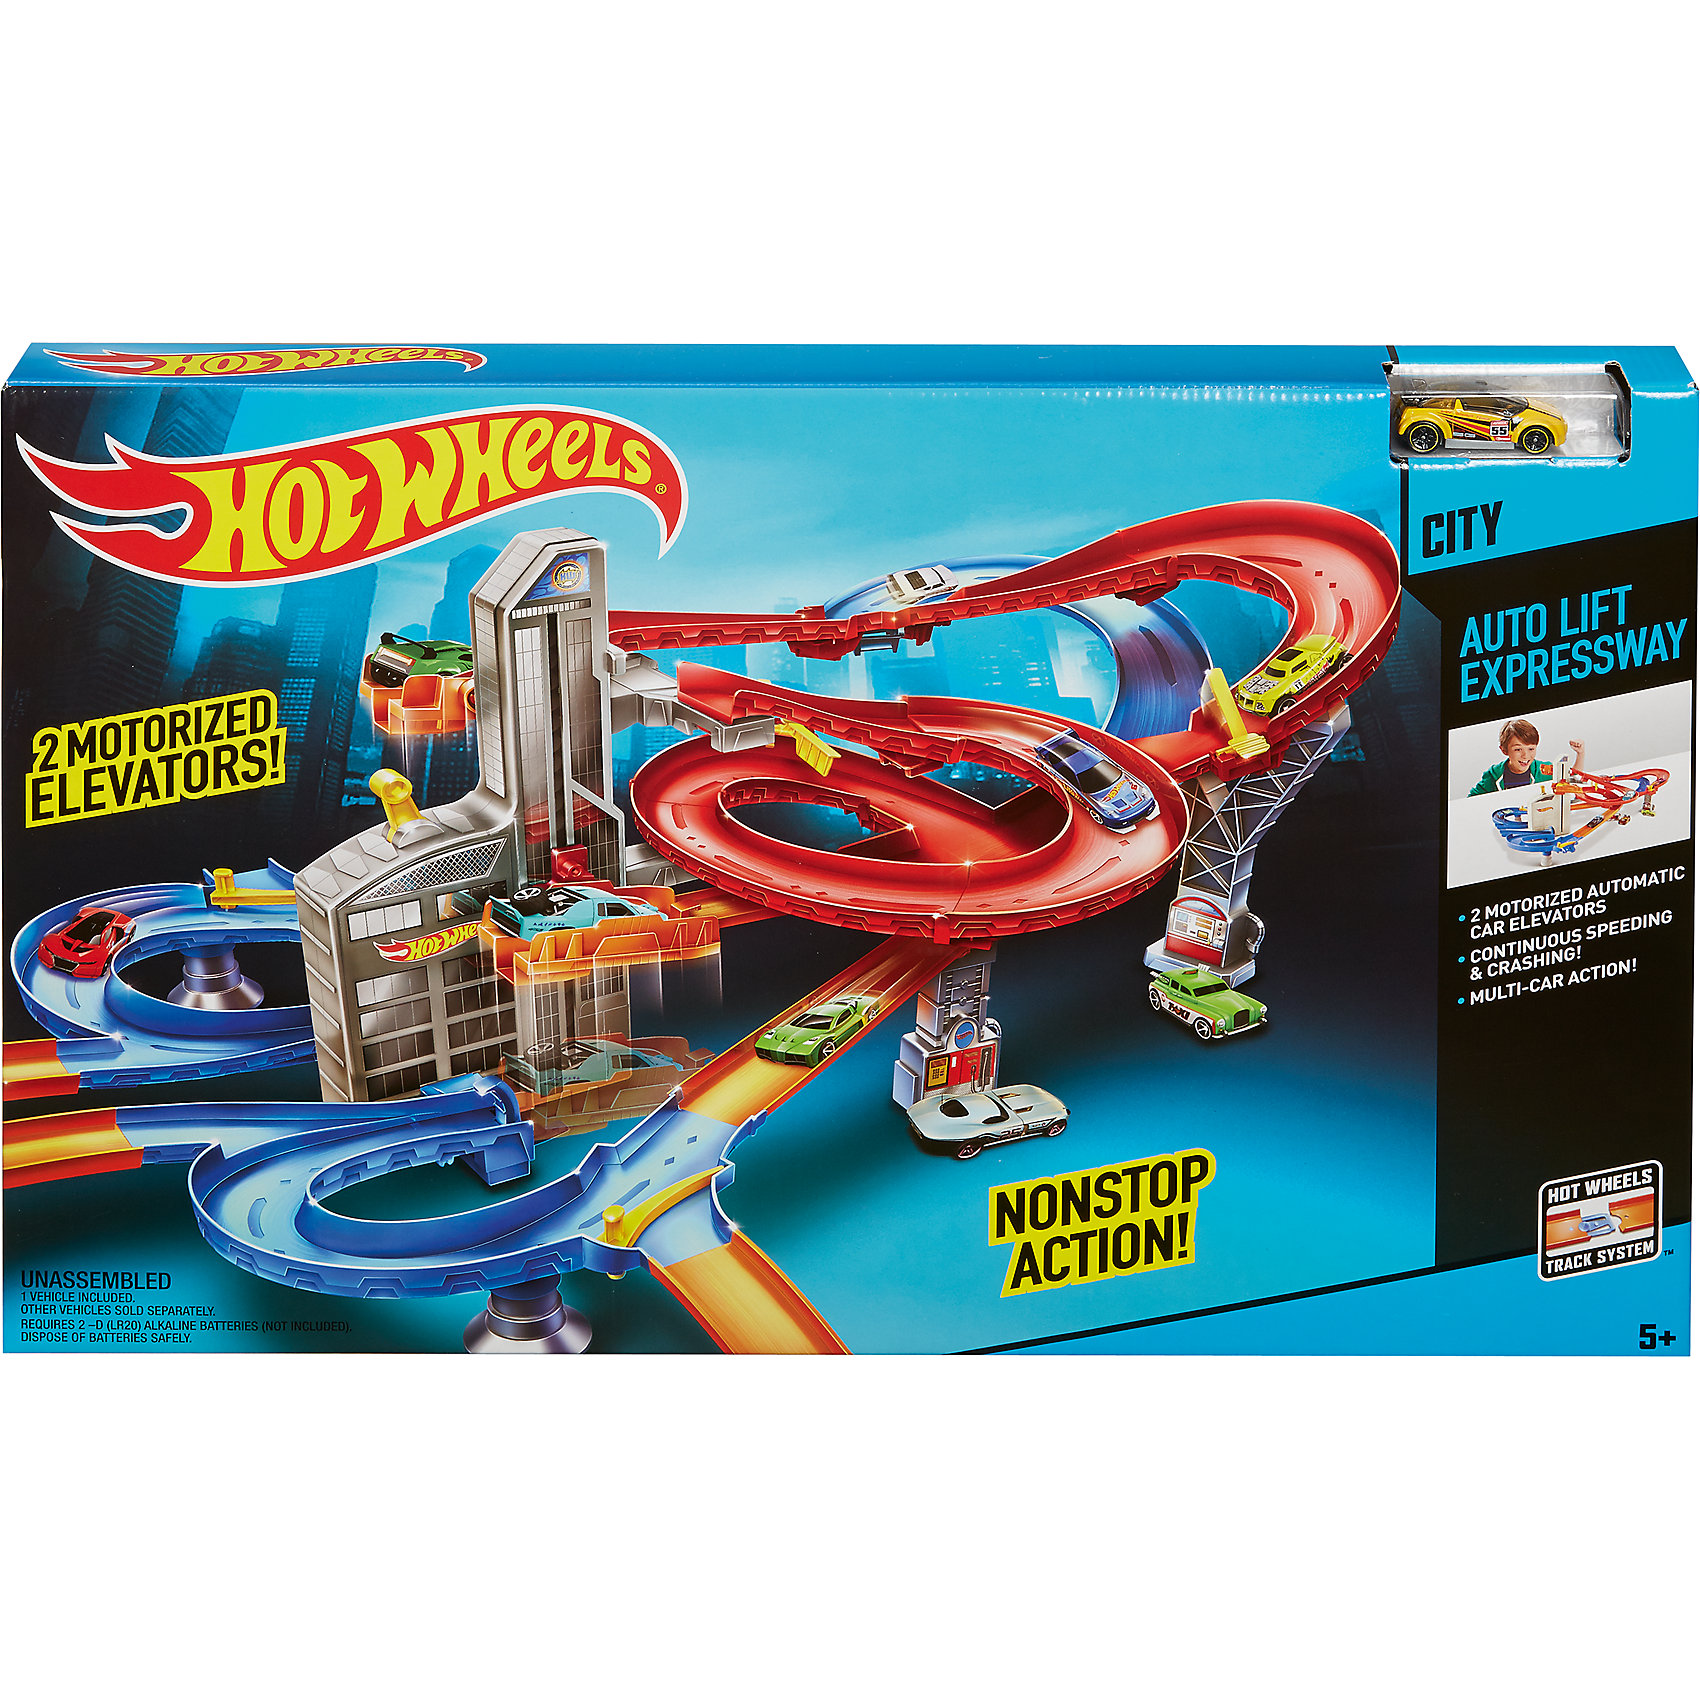 Mattel, Автотрек auto-lift expressway, hot wheels